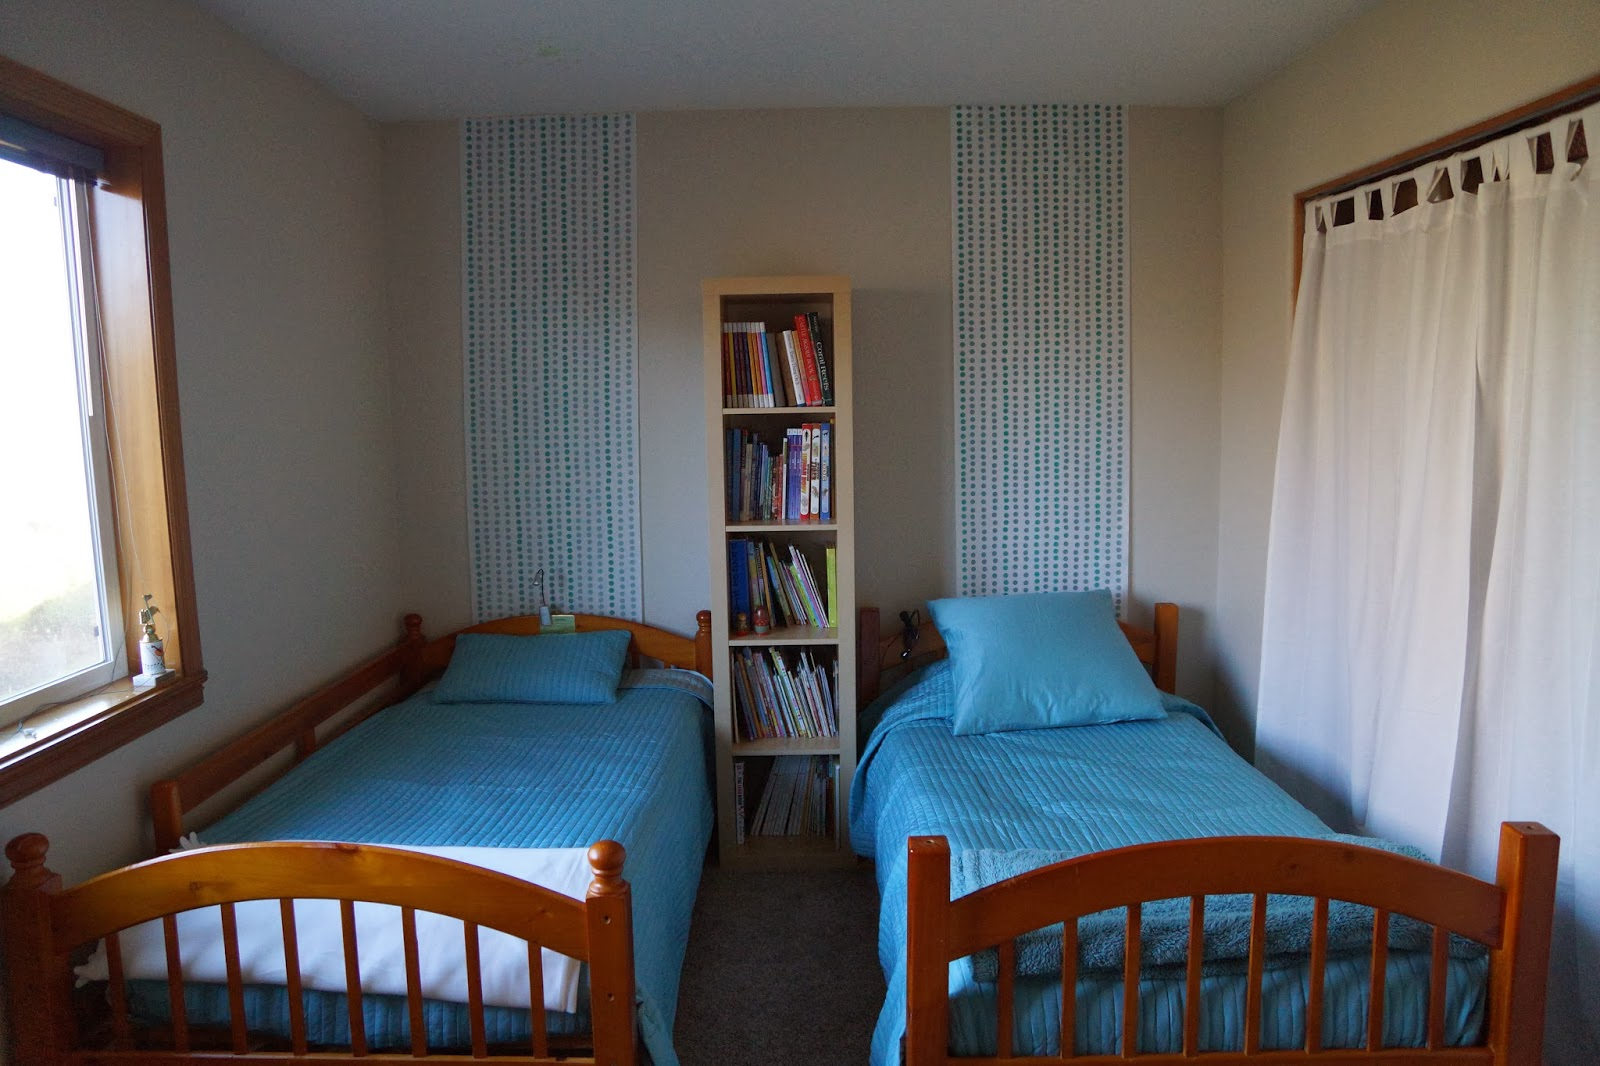 Daily Bread A Simple Bedroom Makeover